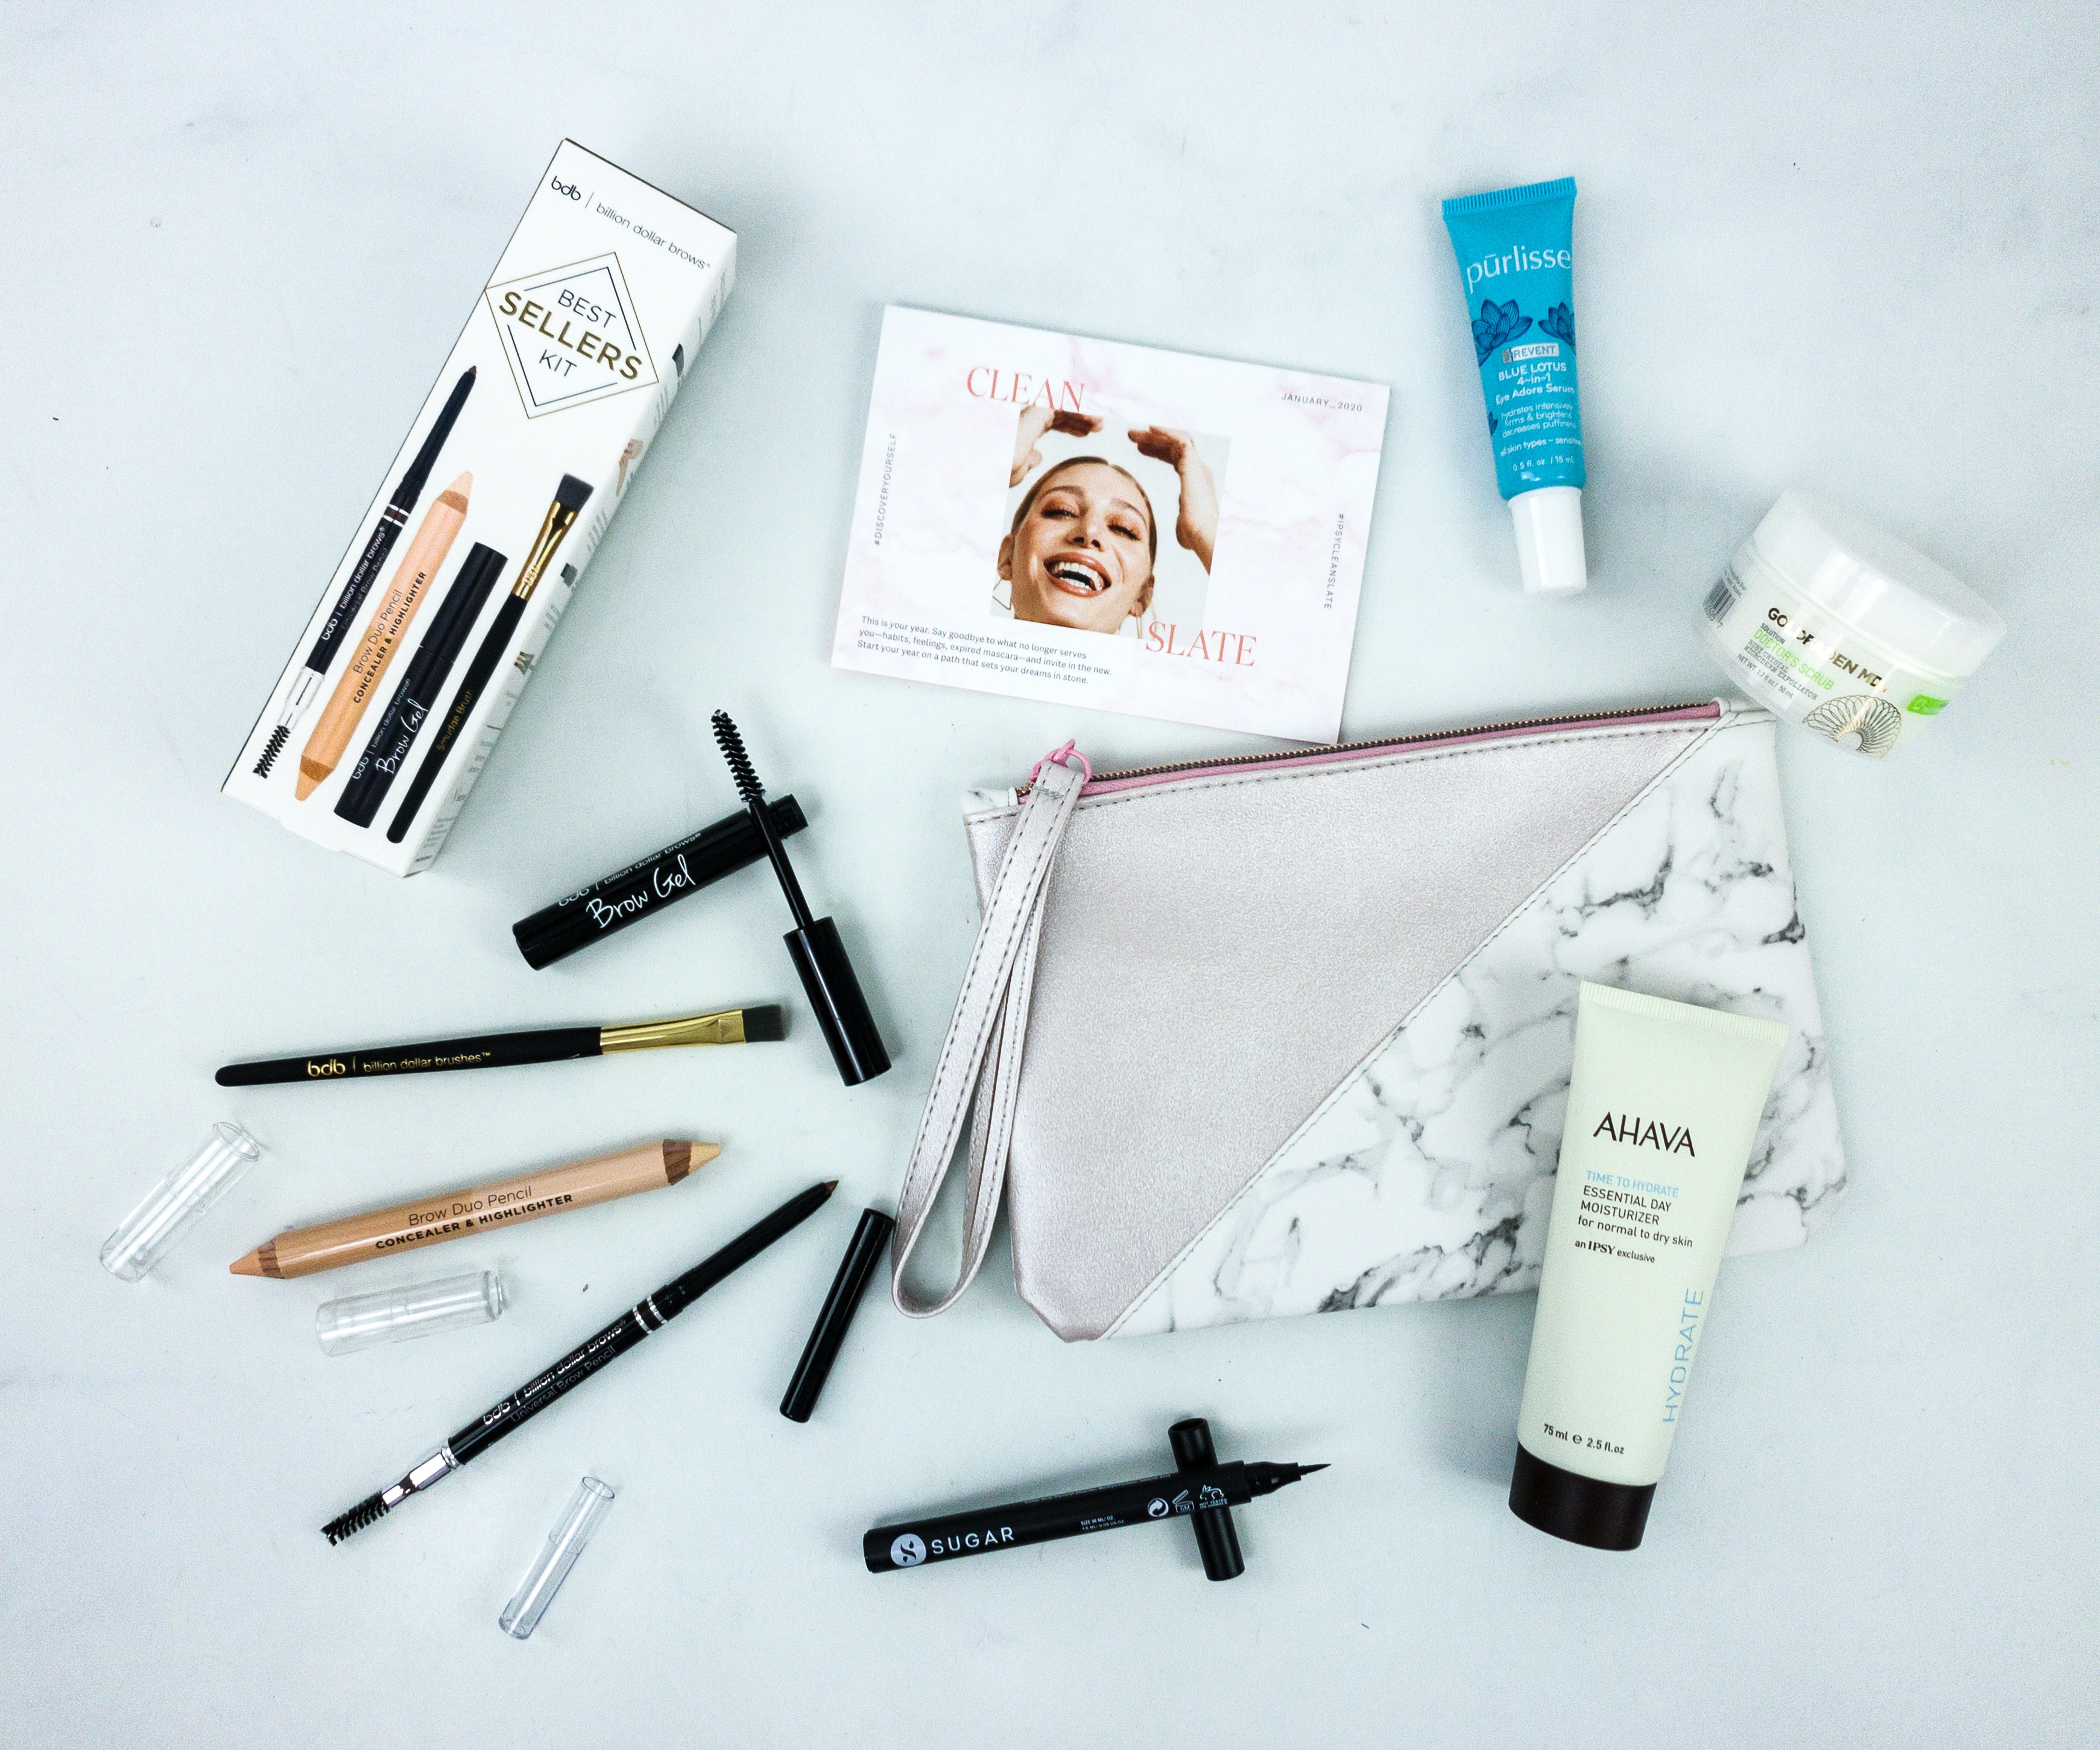 Ipsy Glambag Plus January 2020 Review